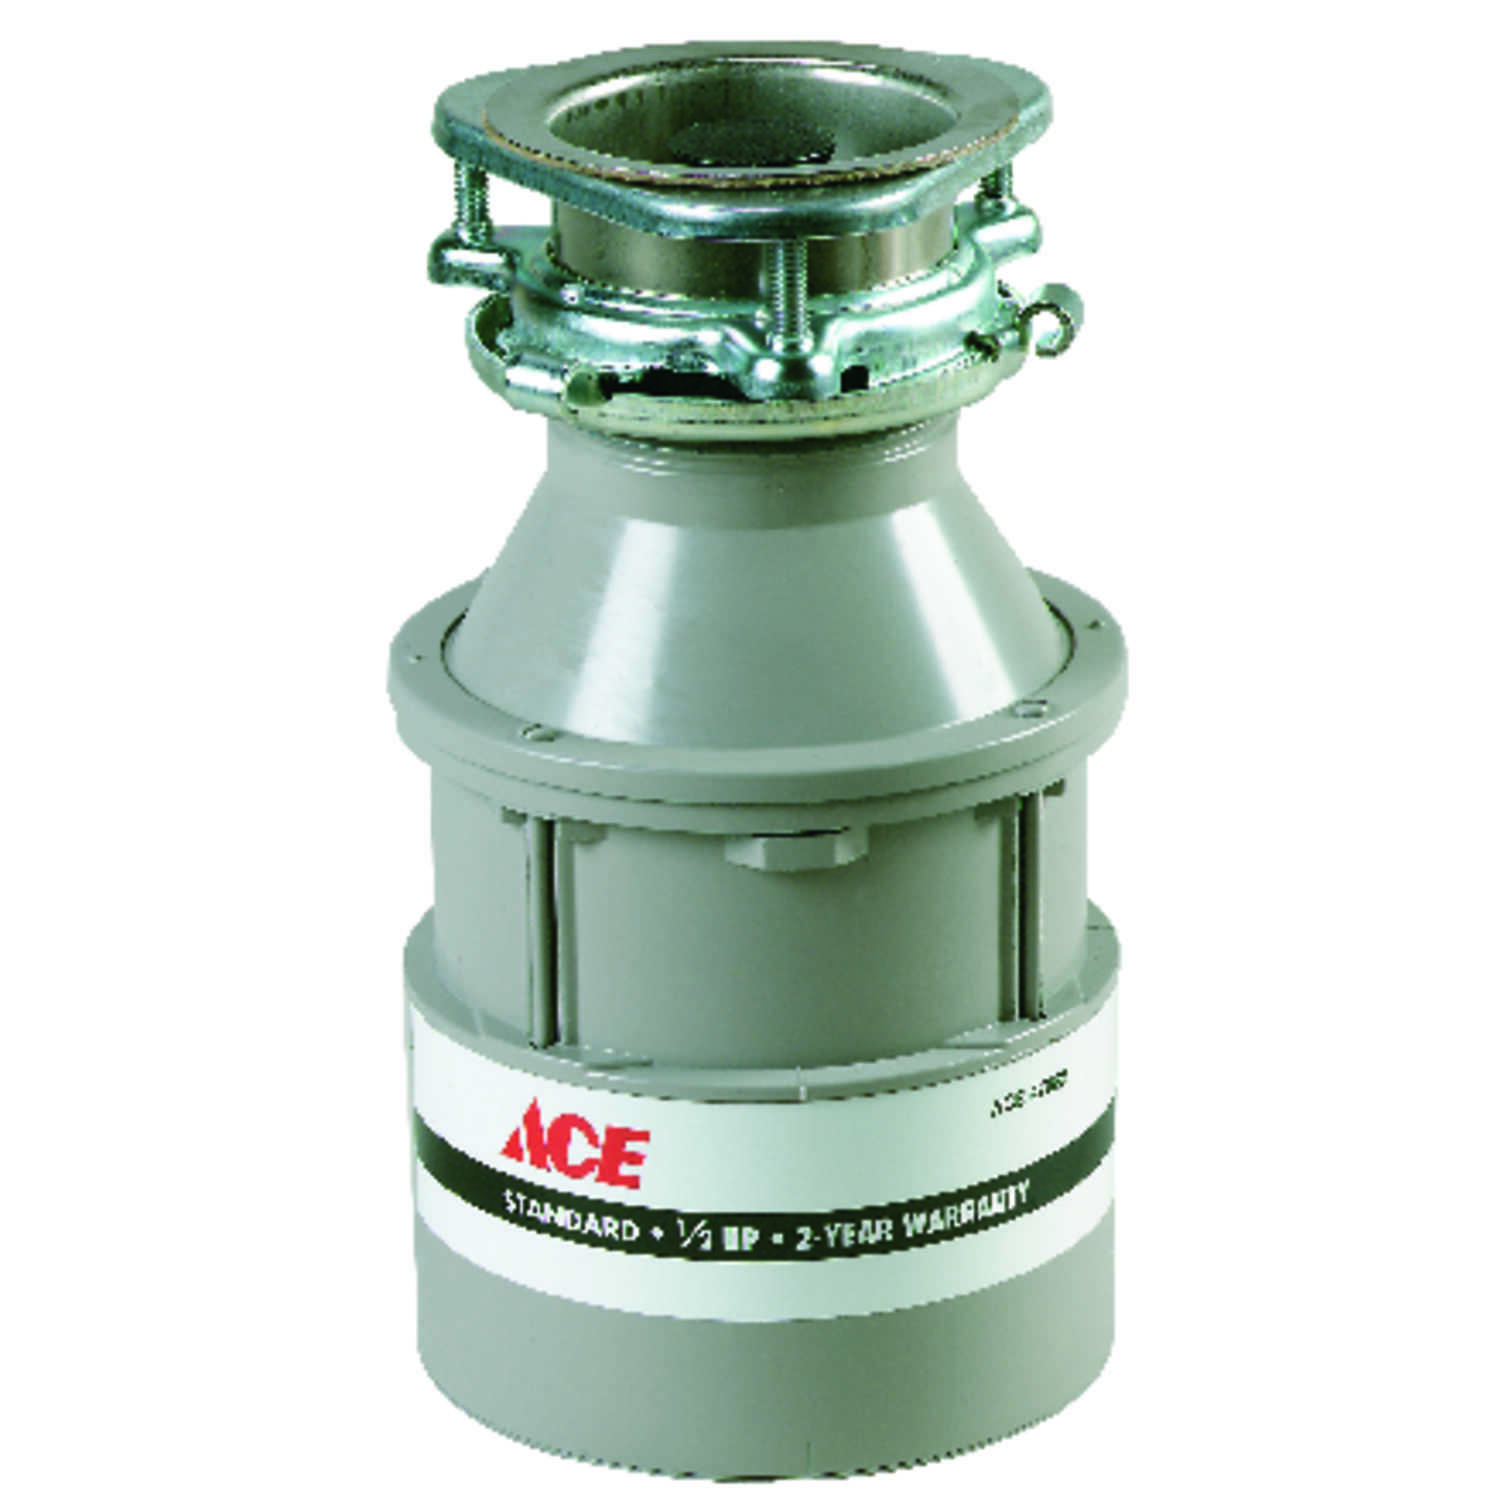 Ace  Garbage Disposal  1/2 hp White